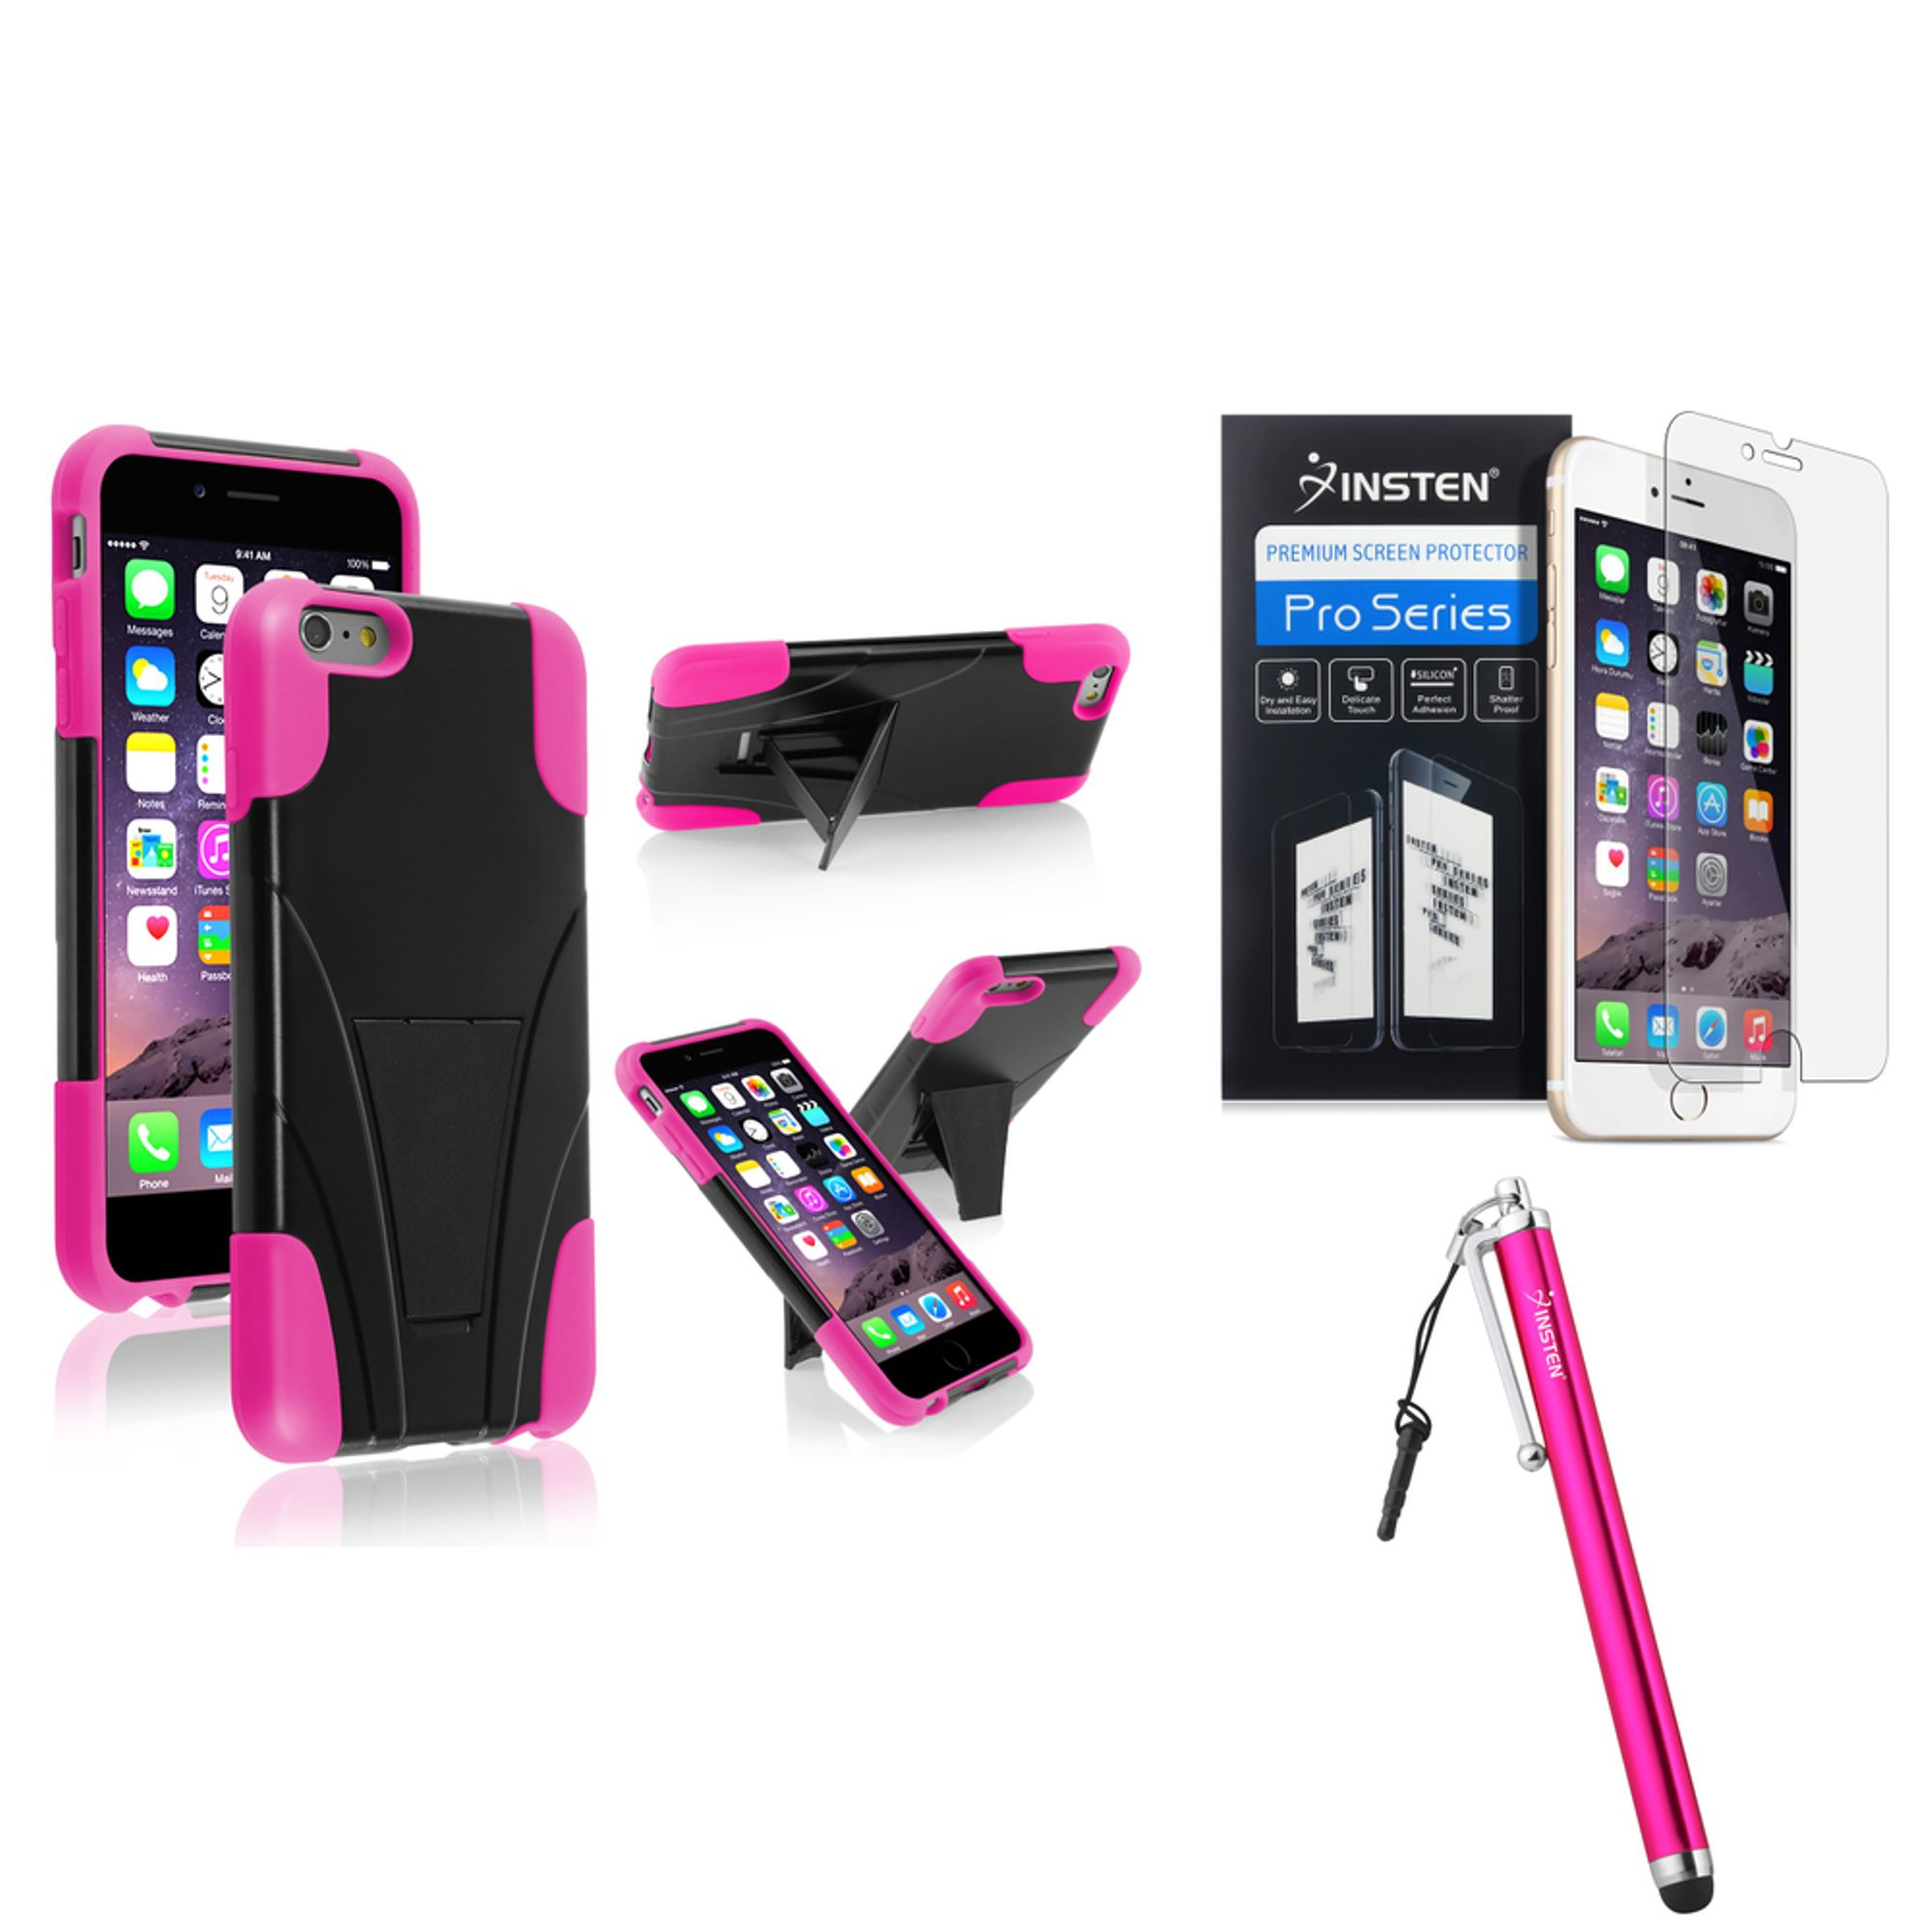 Insten Pink Hybrid T-Stand Case Cover+Touch Stylus+Clear Screen Protector For iPhone 6S Plus / 6 Plus 5.5""